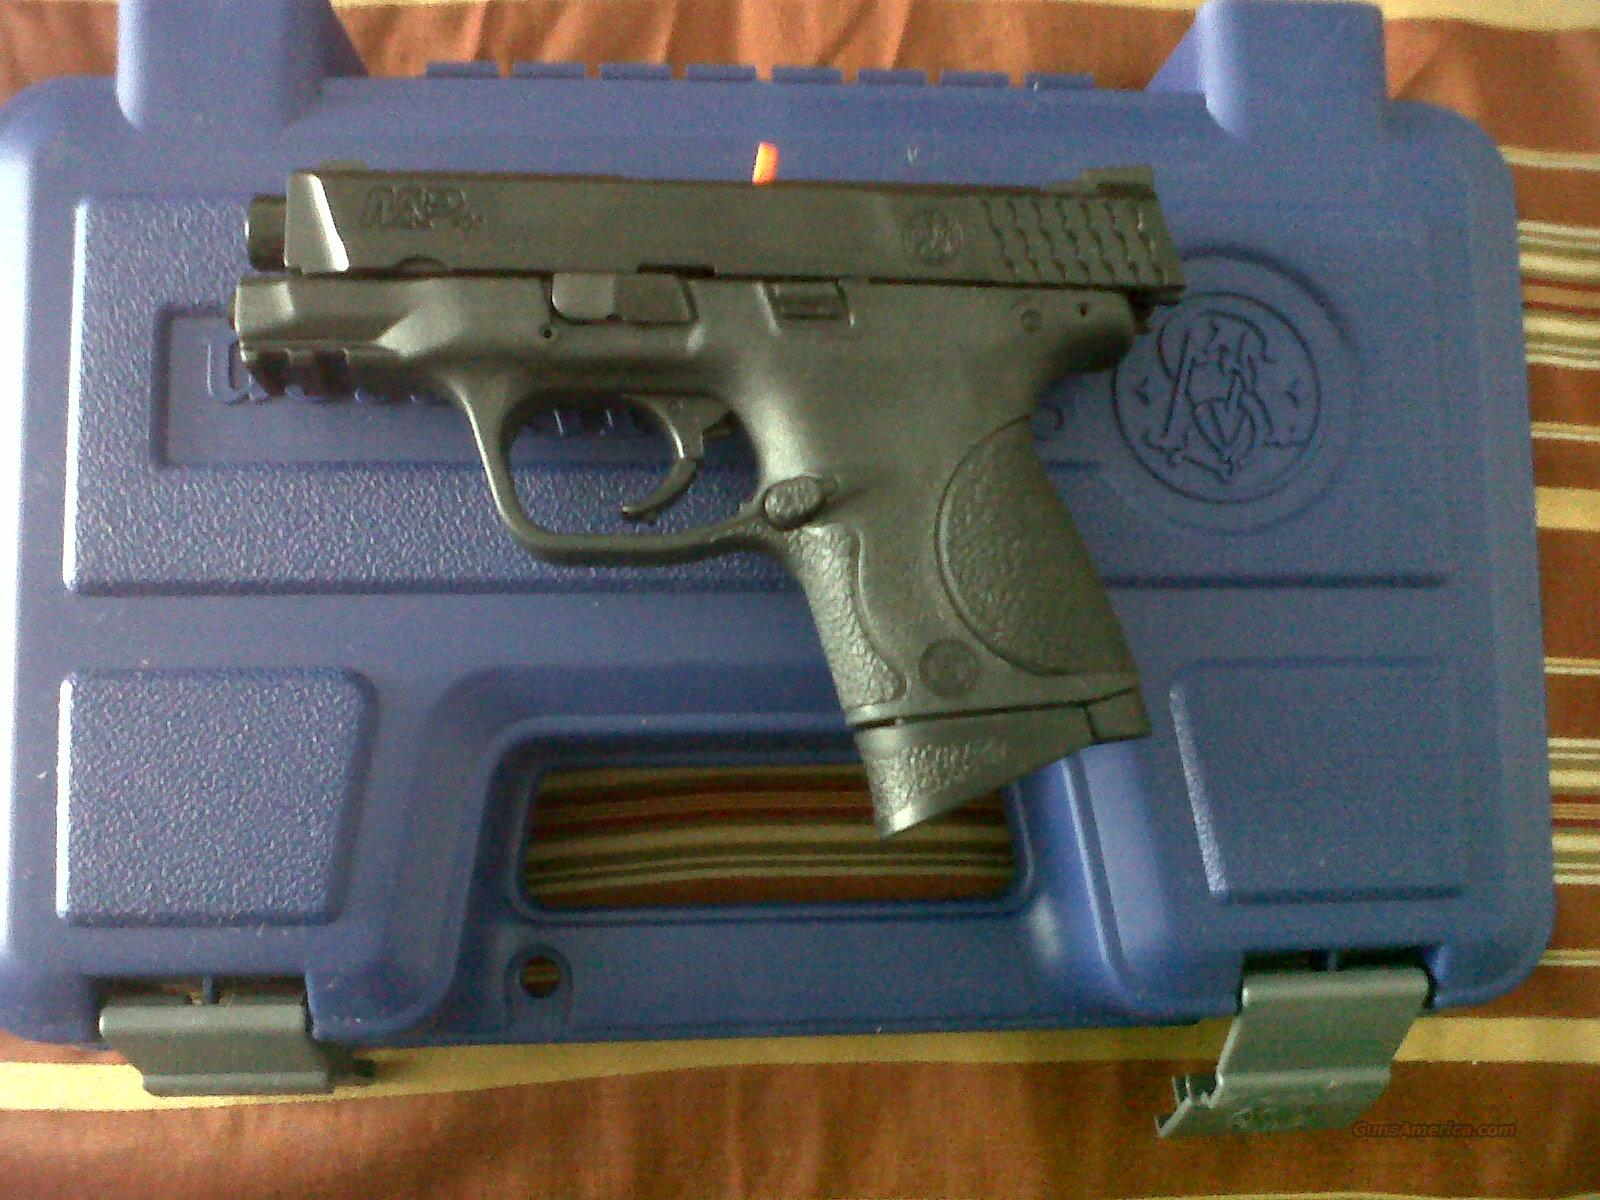 Smith & Wesson M&P 40C 3.5 compact new  Guns > Pistols > Smith & Wesson Pistols - Autos > Polymer Frame